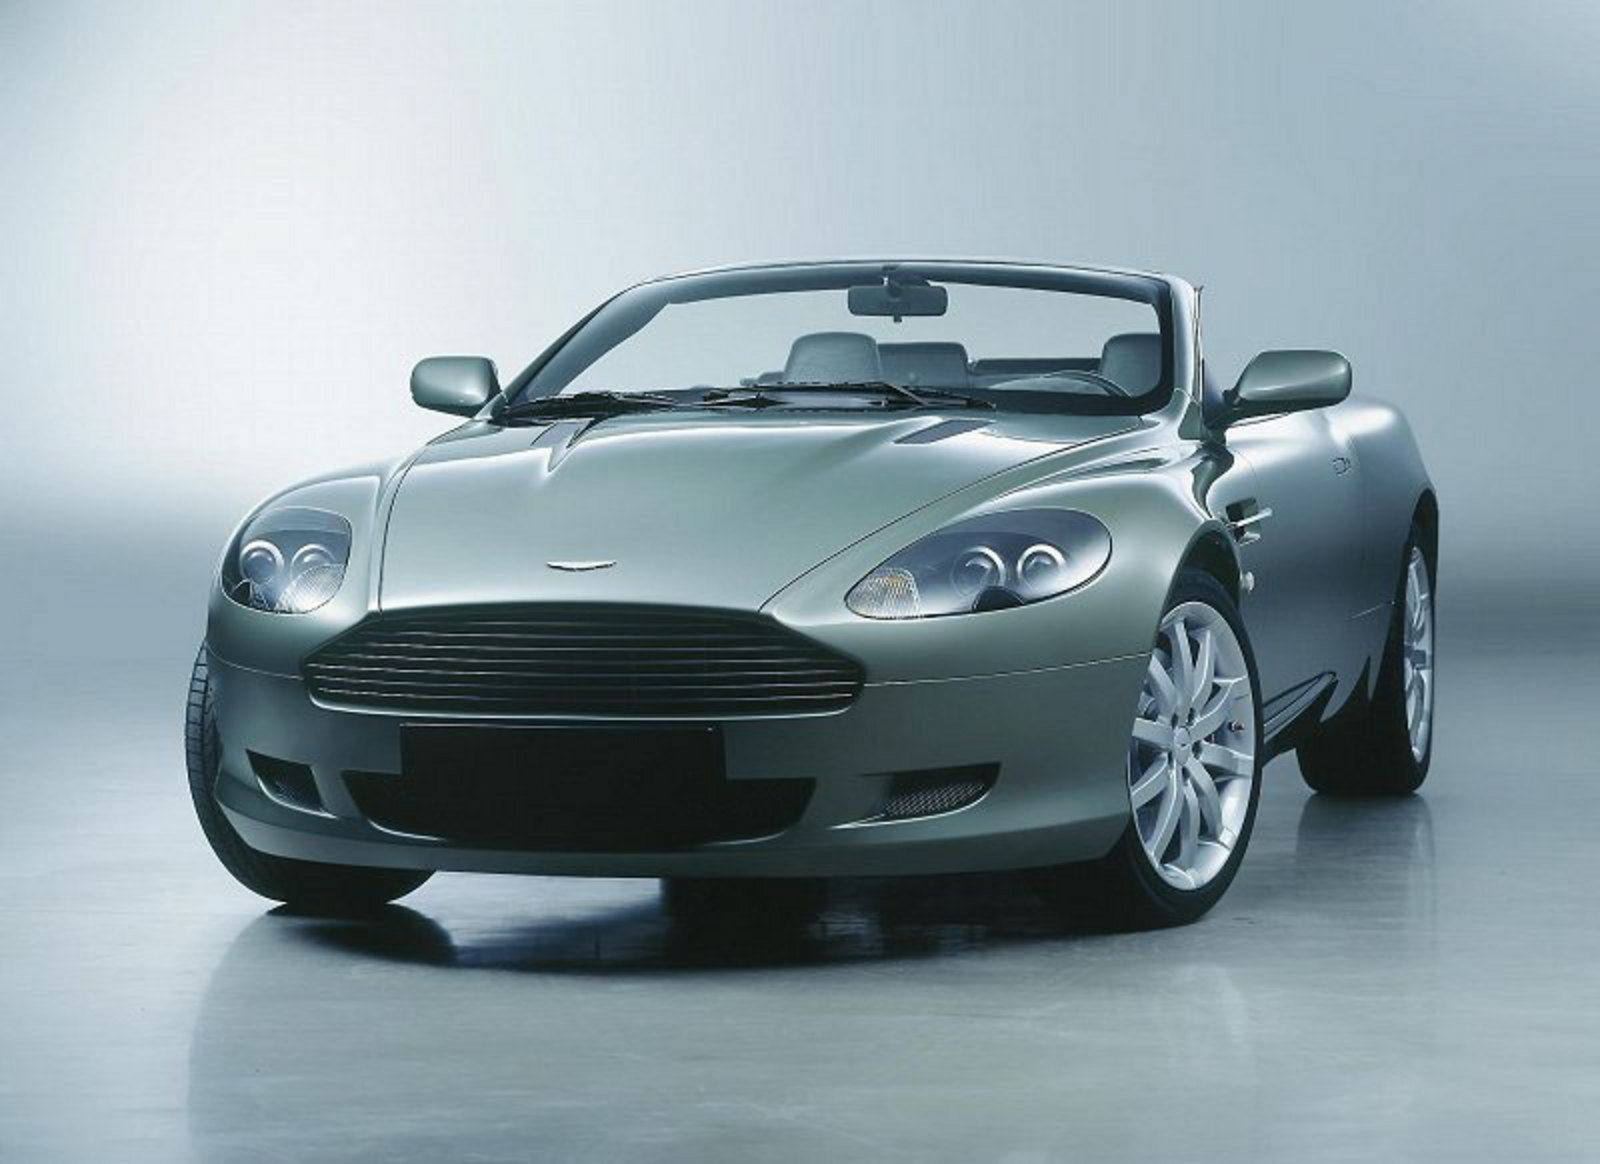 2004 aston martin db9 volante review top speed. Black Bedroom Furniture Sets. Home Design Ideas